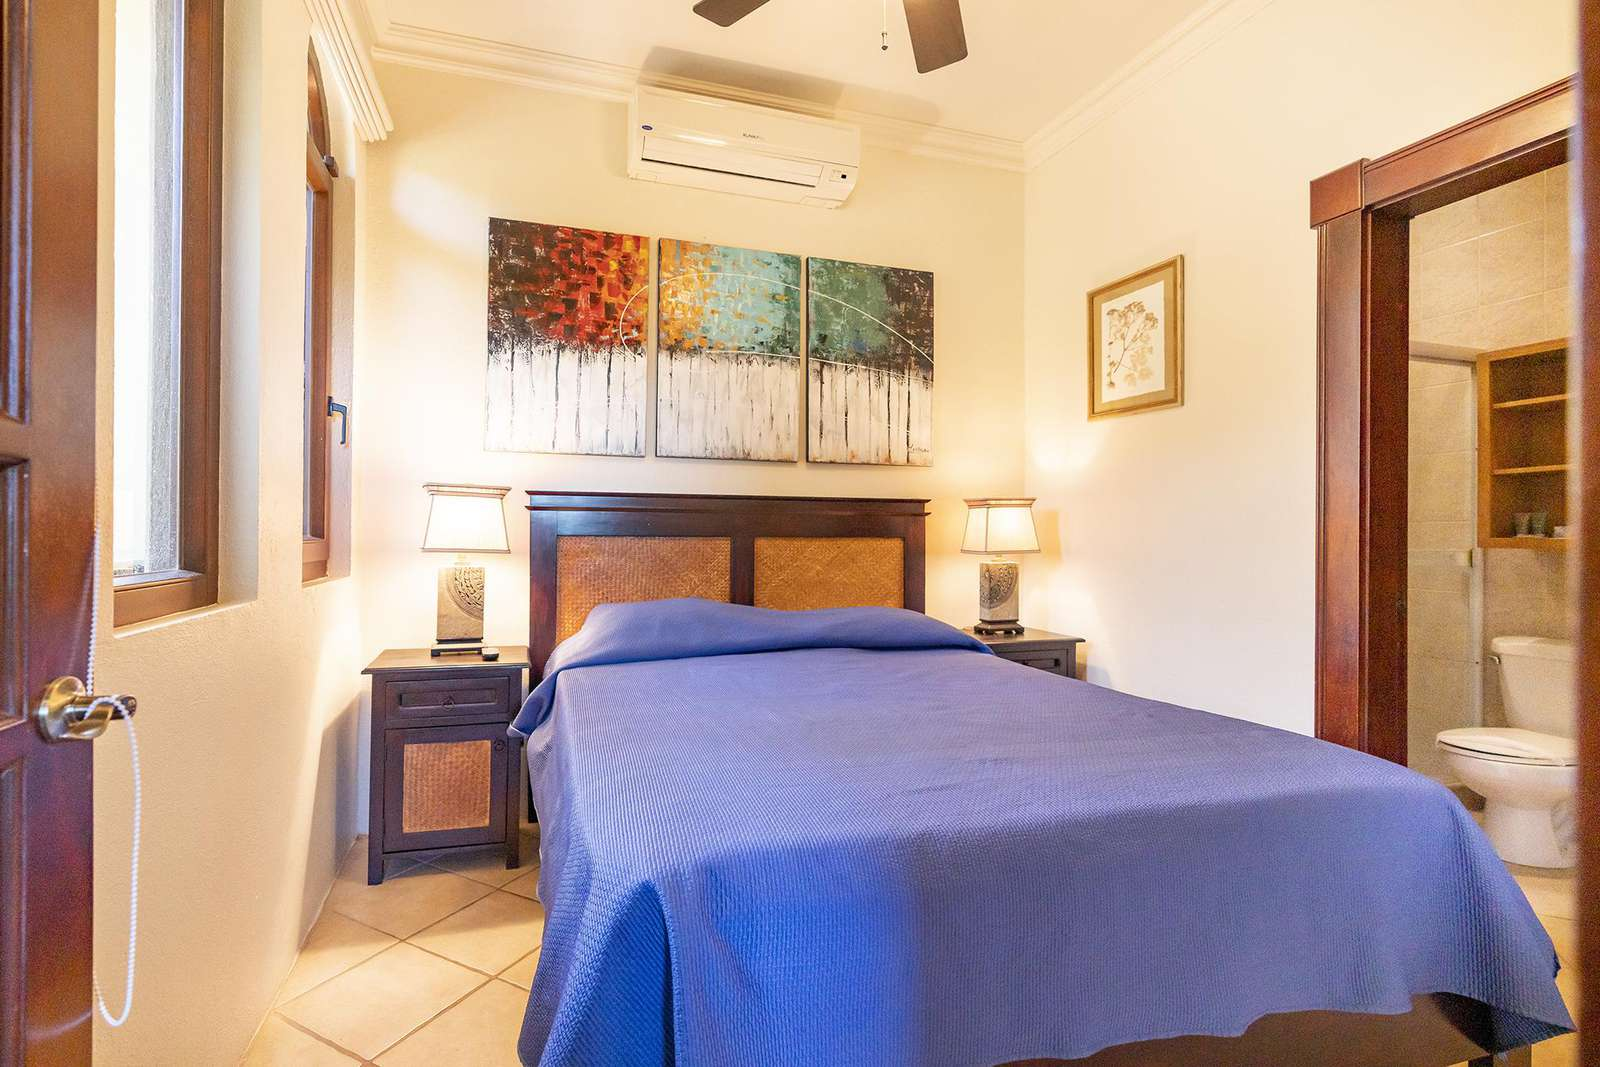 Separate 1 Bedroom guest apartment, Queen bed, full bathroom, full kitchen, full size sleeper sofa